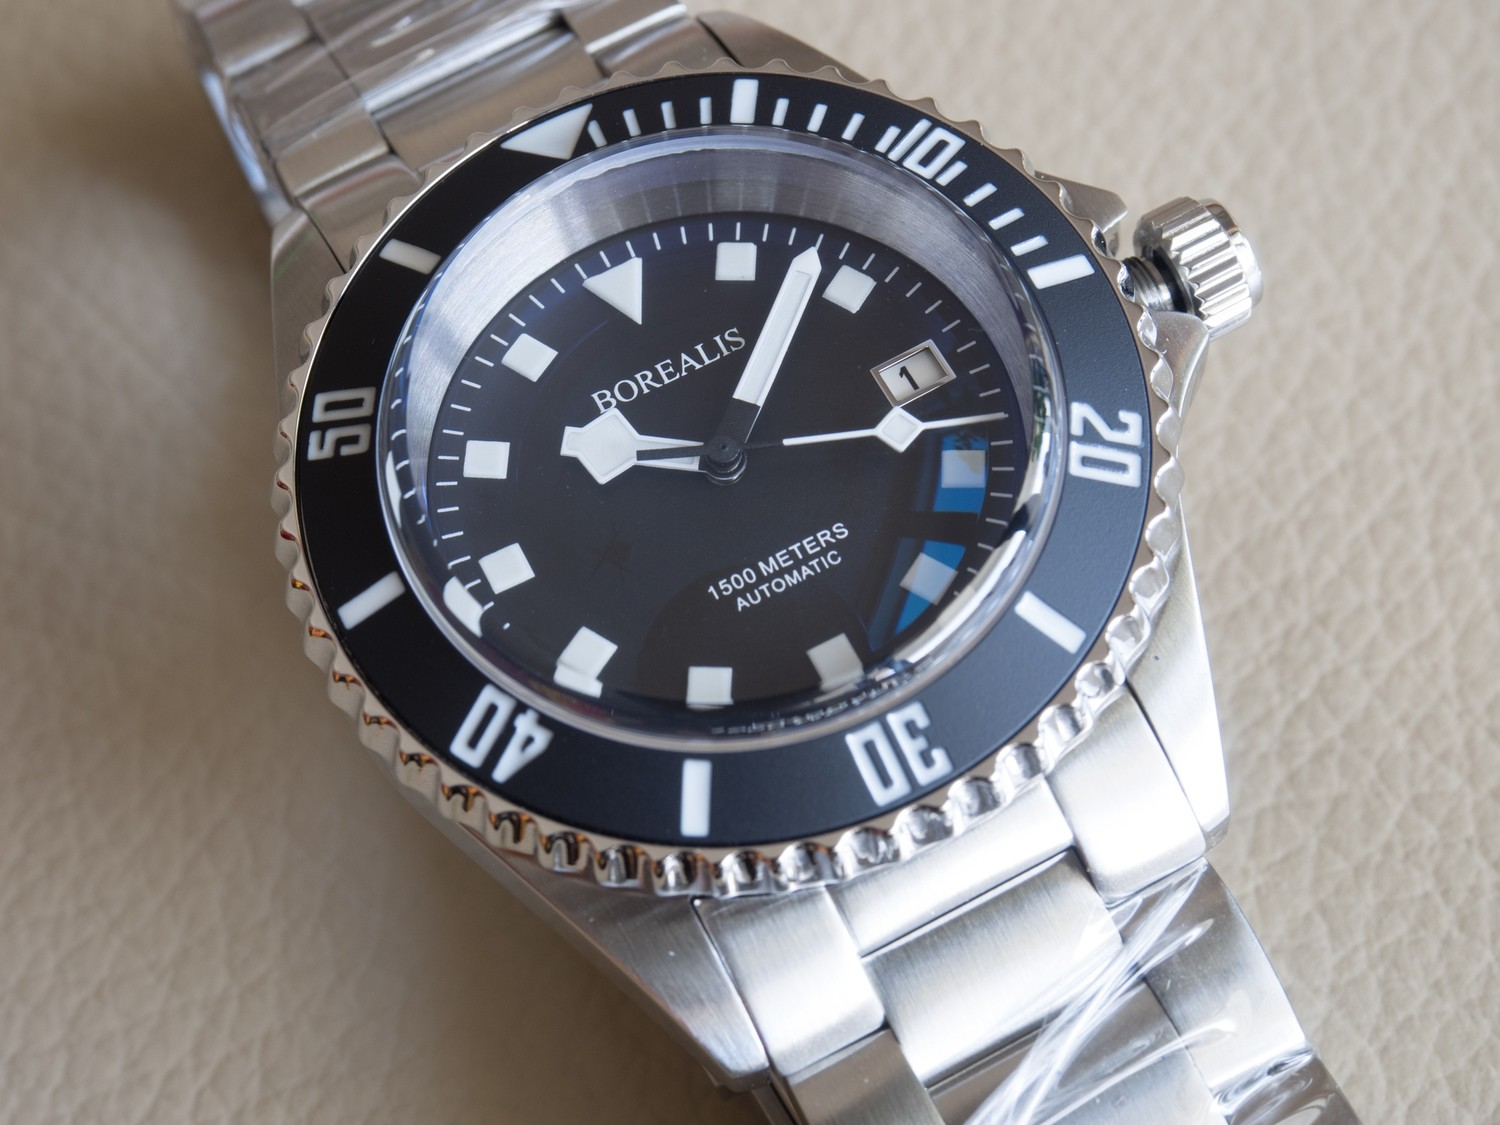 Borealis Sea Hawk 1500m Automatic Diver Watch Seiko NH36 / 4R36 Ceramic Black Bezel Black Dial